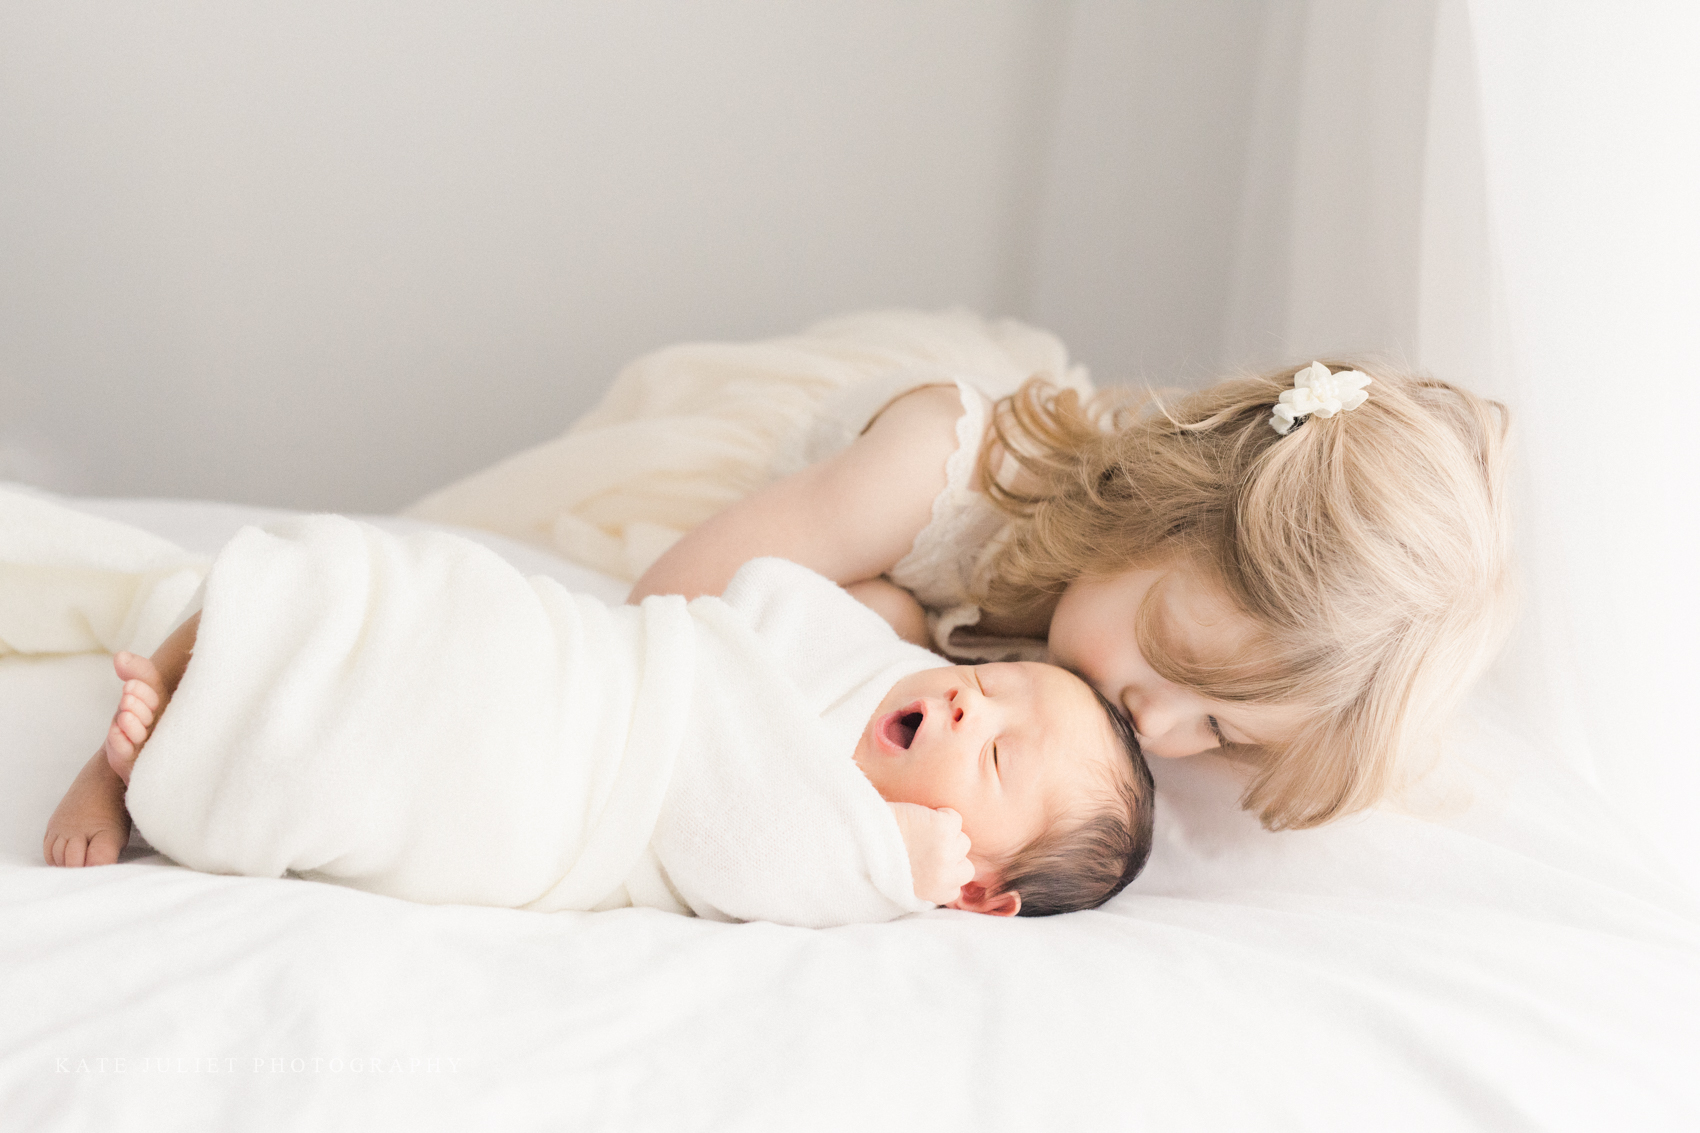 Fairfax VA Newborn Family Photographer | Kate Juliet Photography